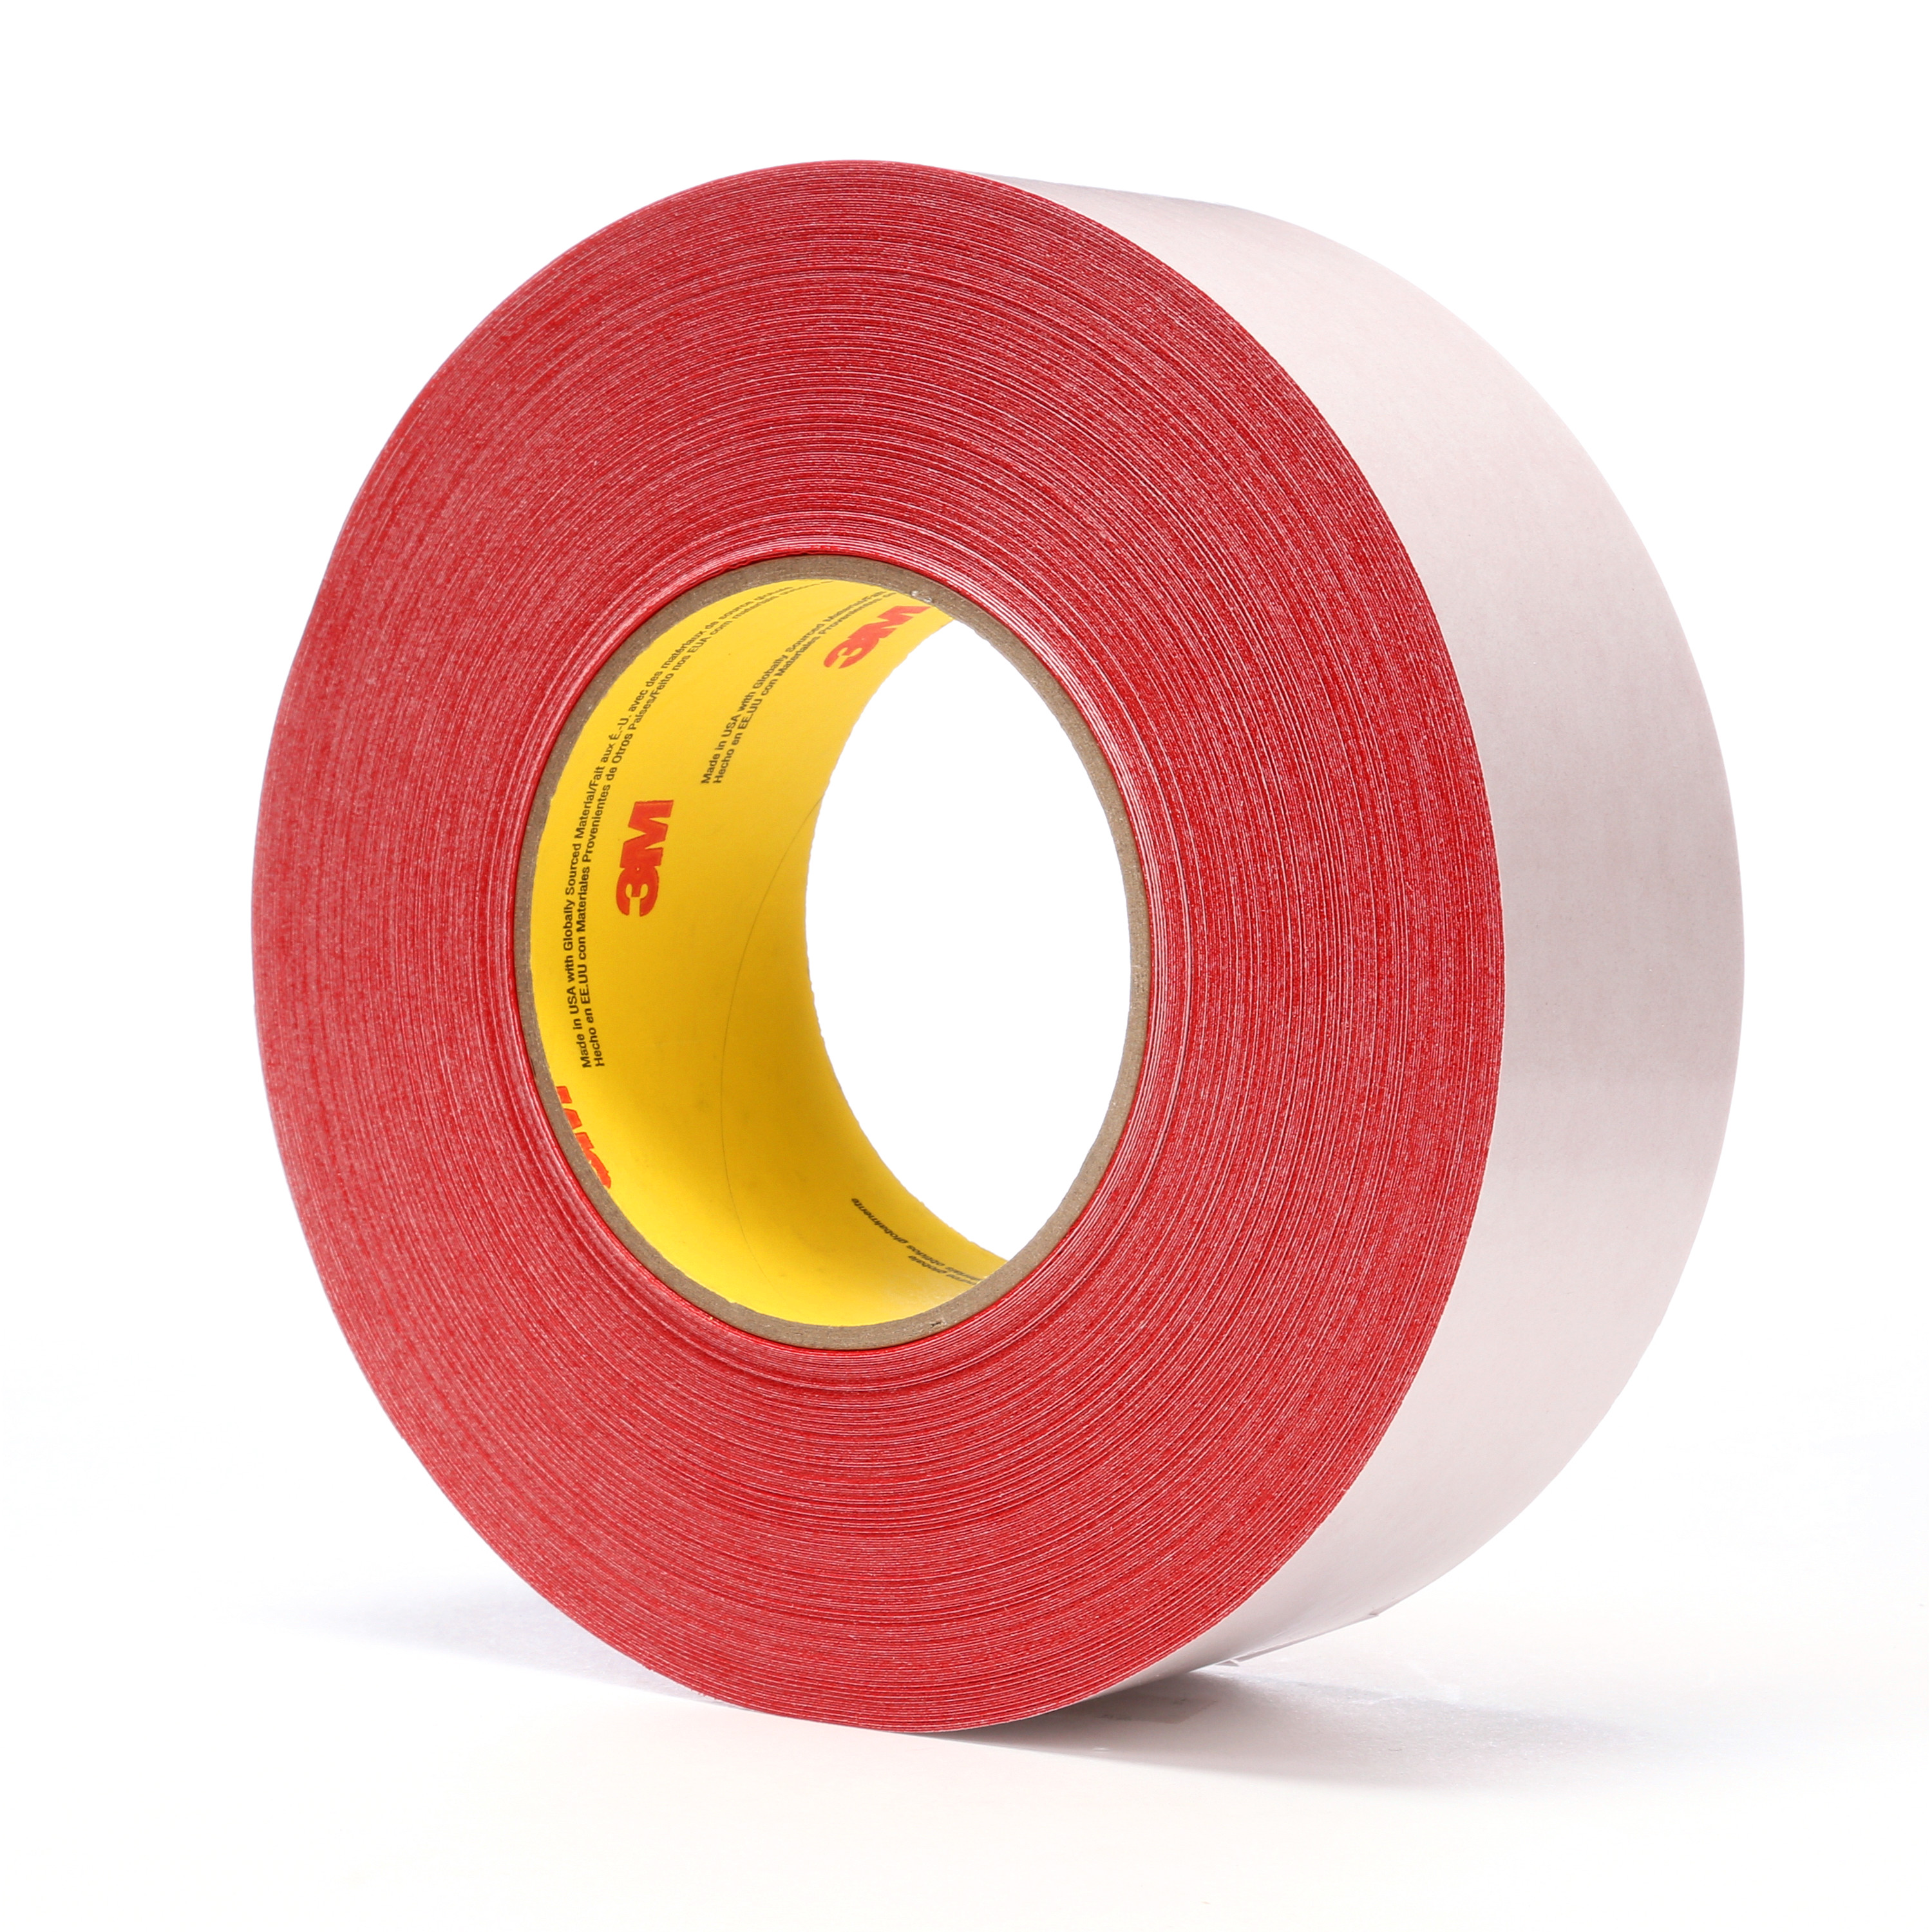 3M™ Double Coated Tape 9741R, Red, 48 mm x 55 m, 6.5 mil, 24 rolls per case